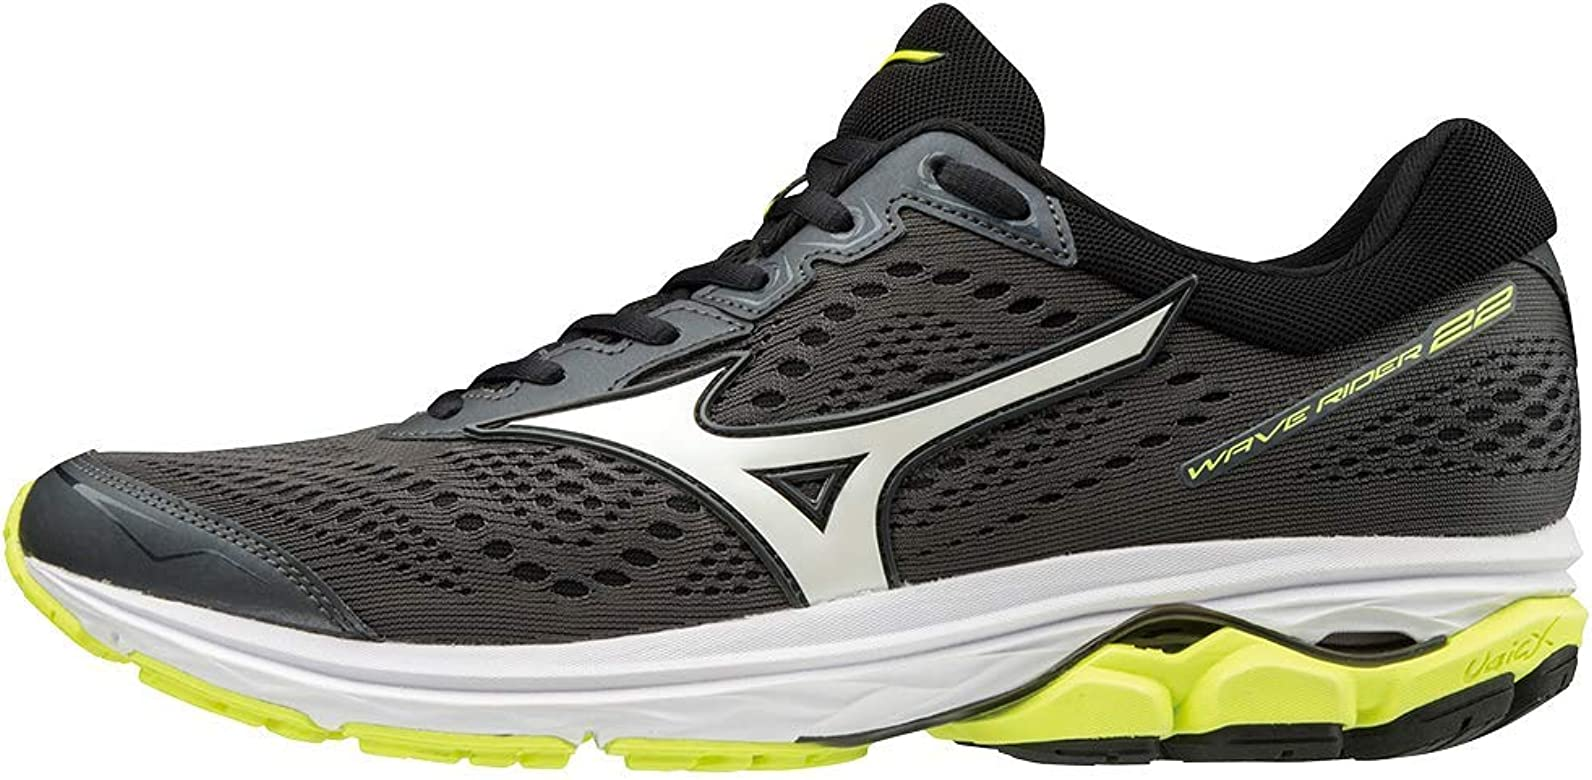 Mizuno Wave Rider 22 Zapatillas de Running Hombre, Gris (Dark Shadow/White/Safety Yellow 71), 44.5 EU (10 UK): Amazon.es: Zapatos y complementos